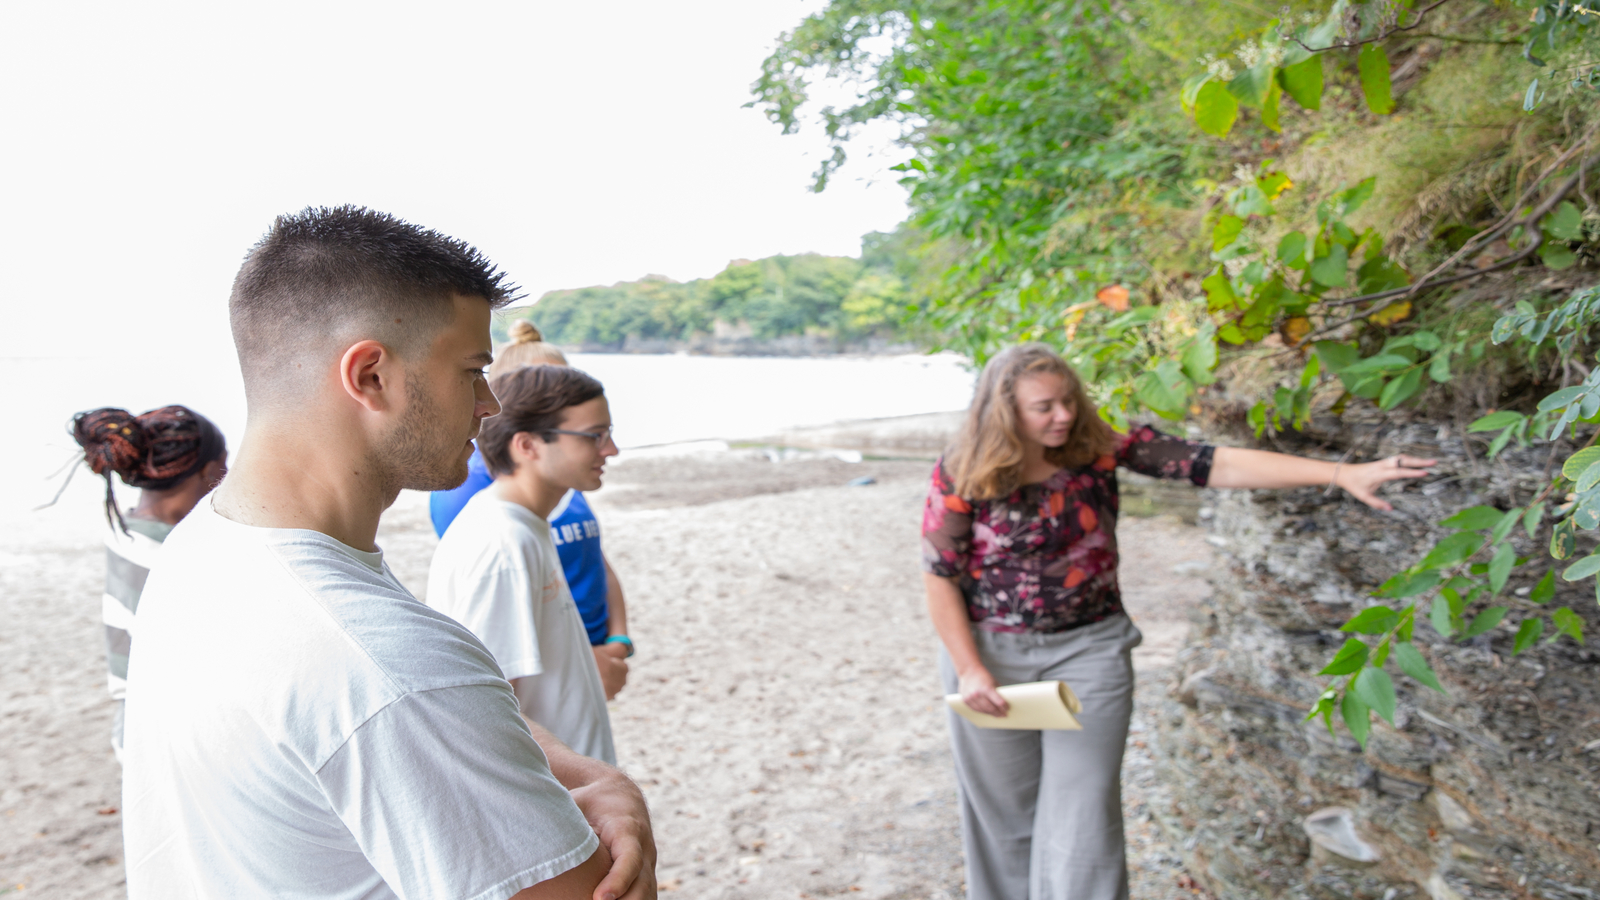 a geology class examines a rock formation near a local beach